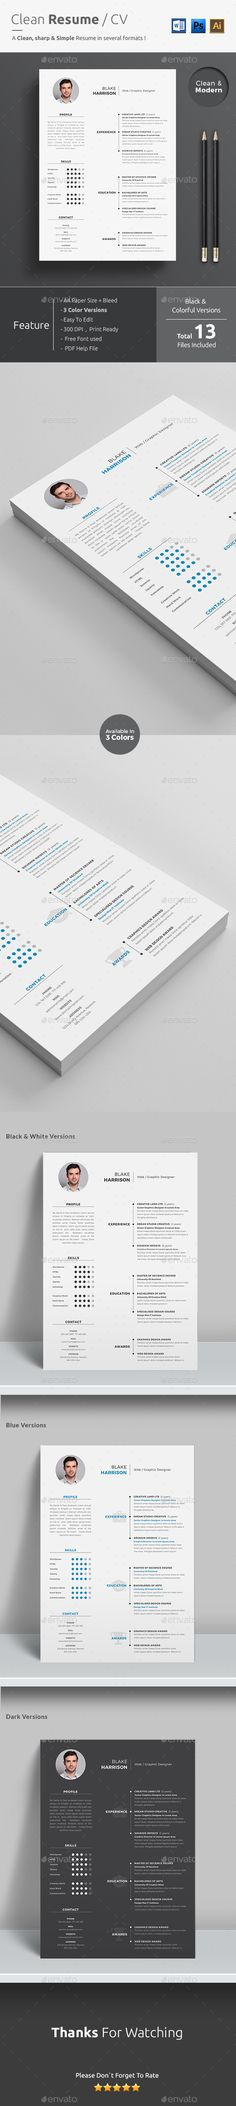 Simple Resume Templates%0A Map Of Oregon Hood River